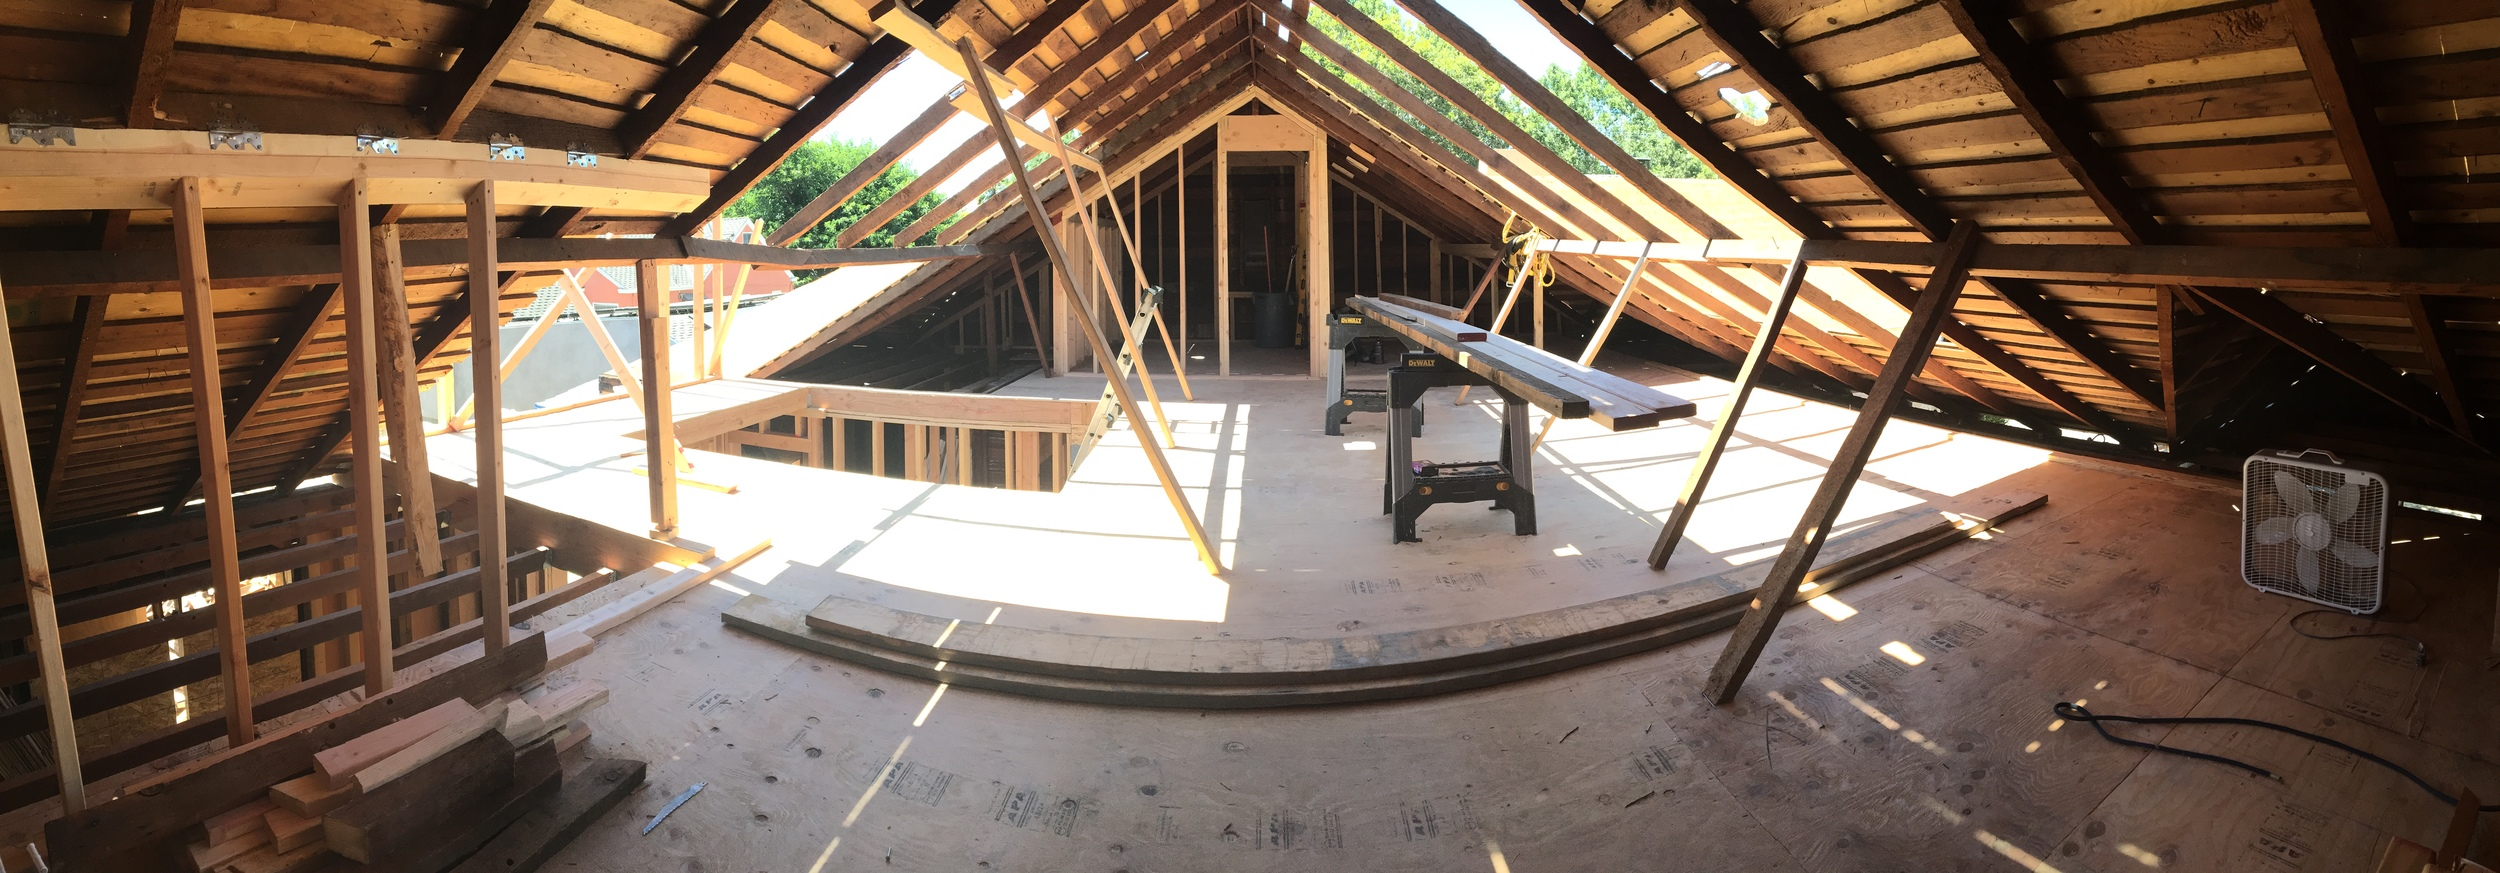 Here's a pano shot of the attic.The master bathroom is what you are looking at. It looks tiny but it won't be. The openings in the roof are where the dormers will be! Big stuff, friends.